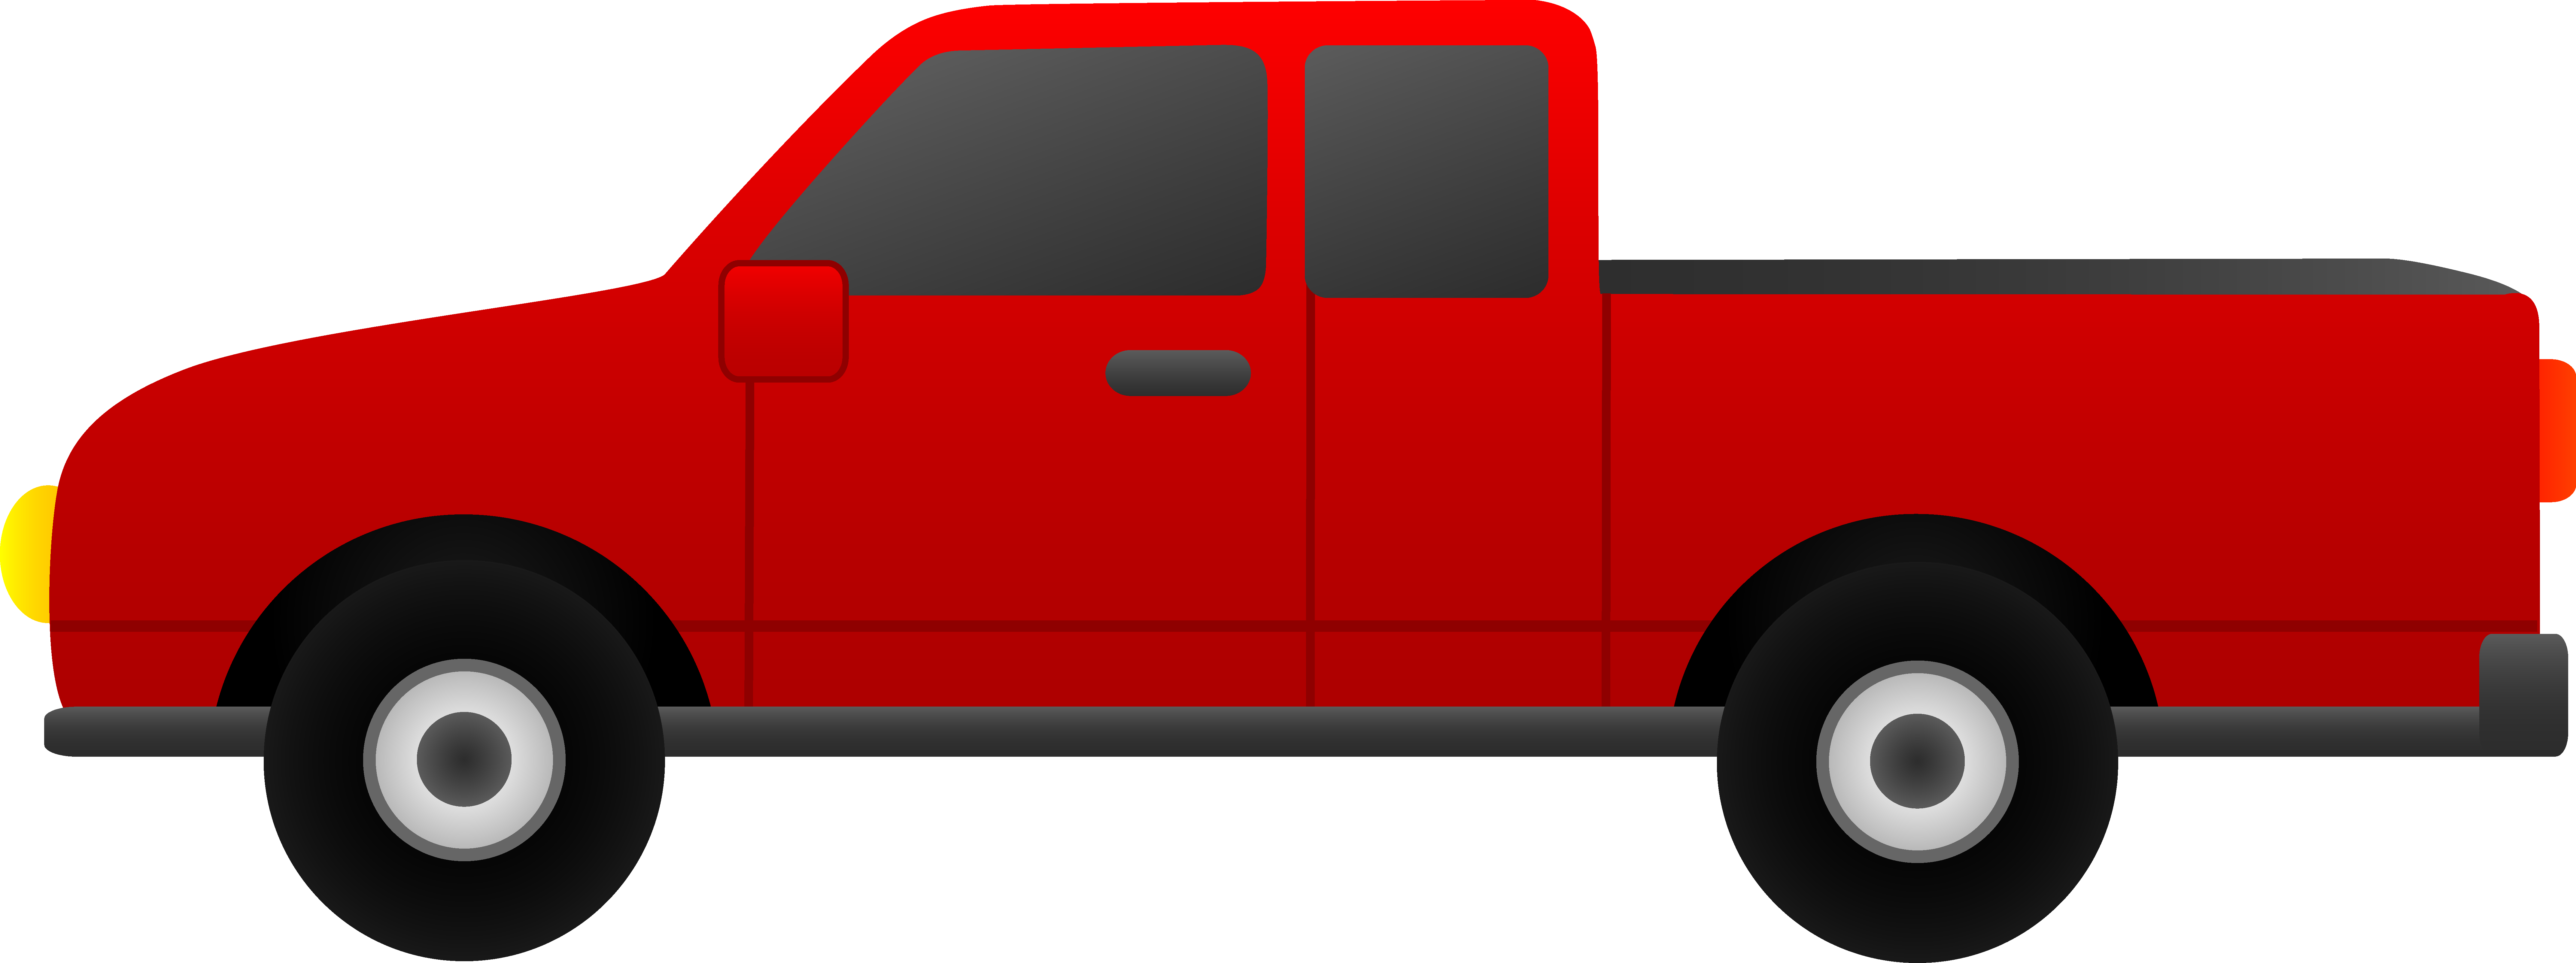 Car and truck clipart banner transparent download 57 Chevy Clipart at GetDrawings.com | Free for personal use 57 Chevy ... banner transparent download